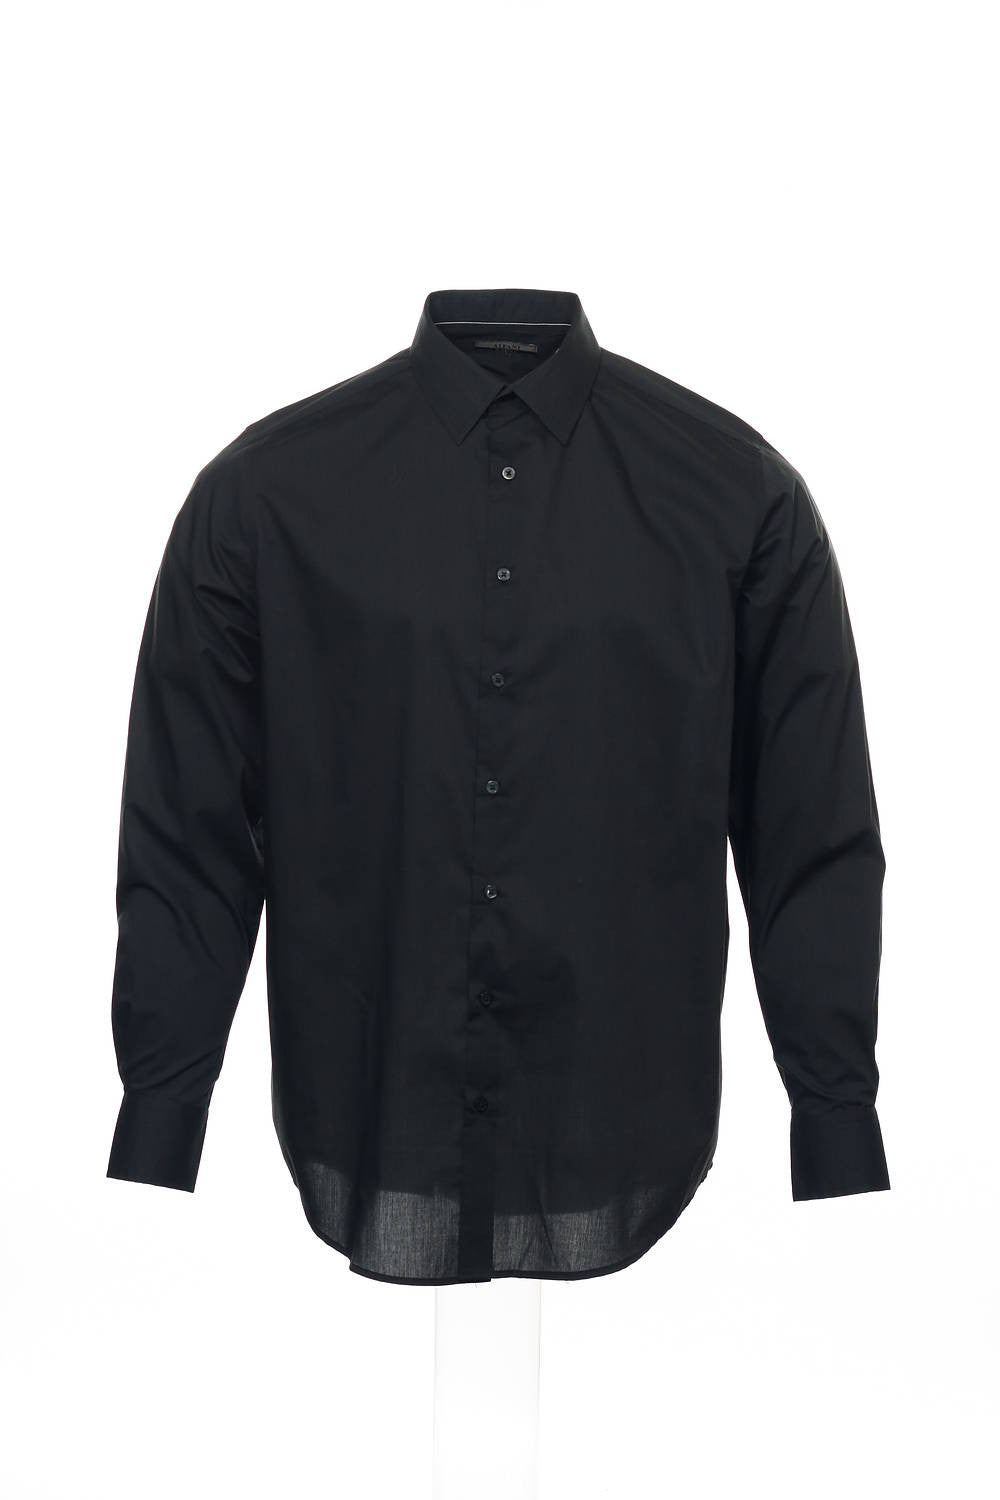 Alfani Big & Tall Mens Black Pinstripe Button Down Shirt